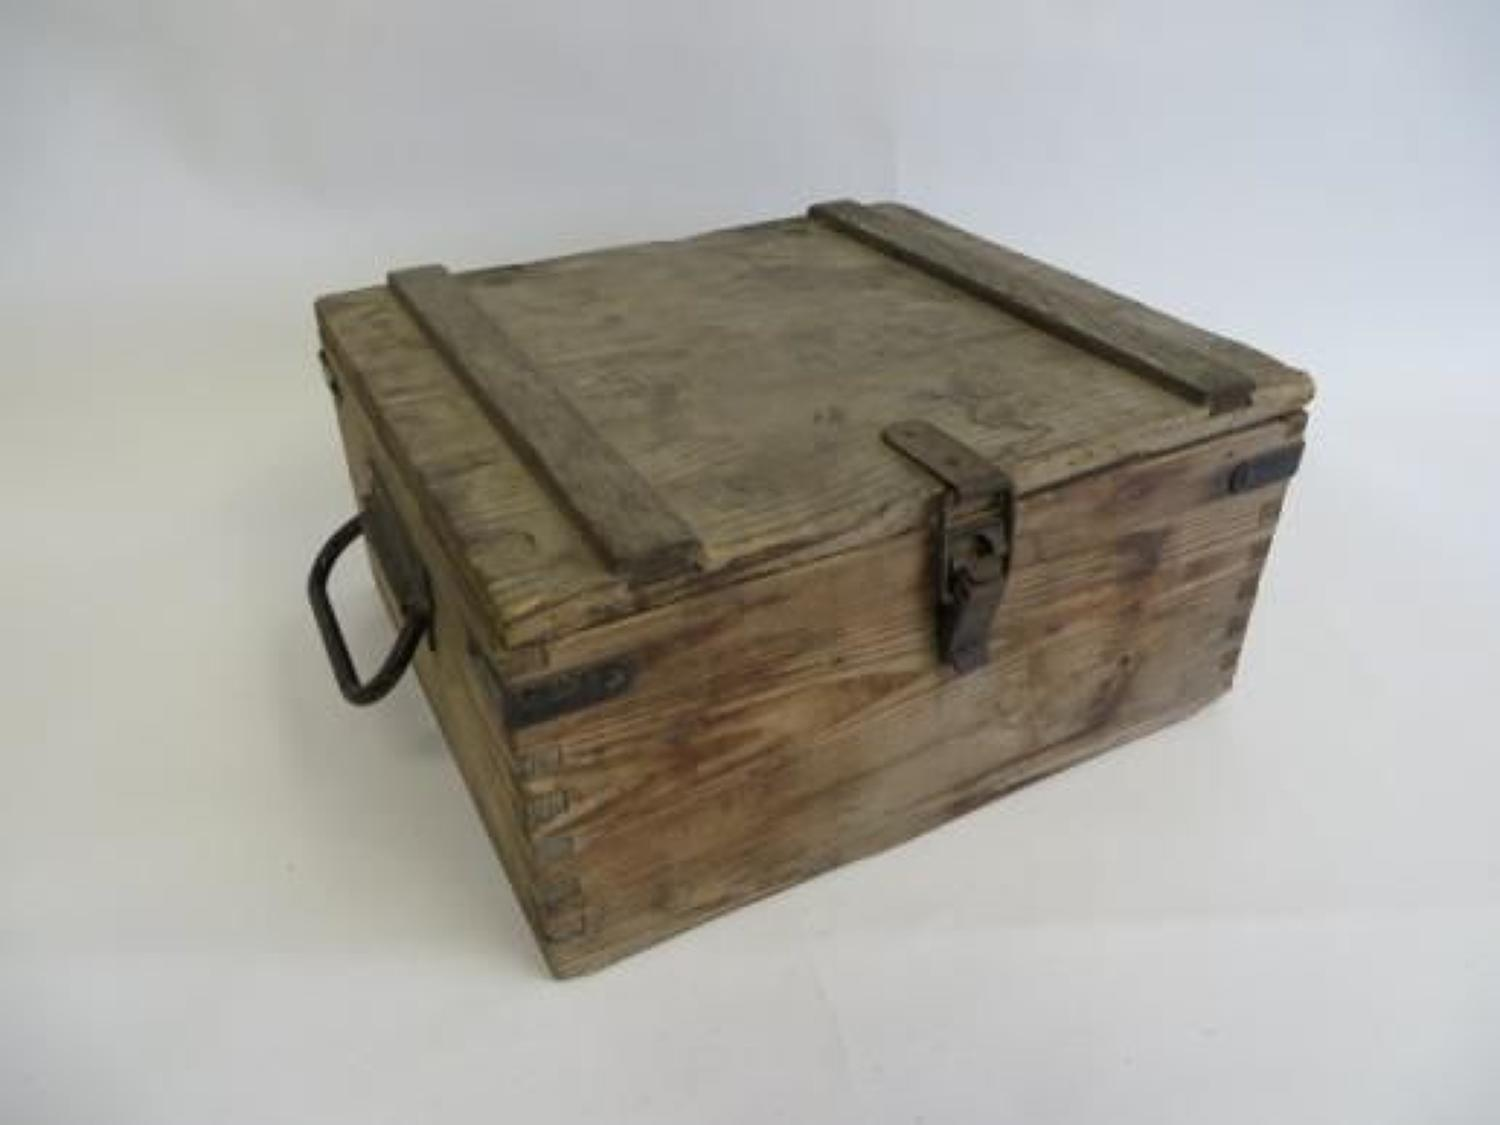 WW2 Ammunition /Grenade Wooden Transit Box